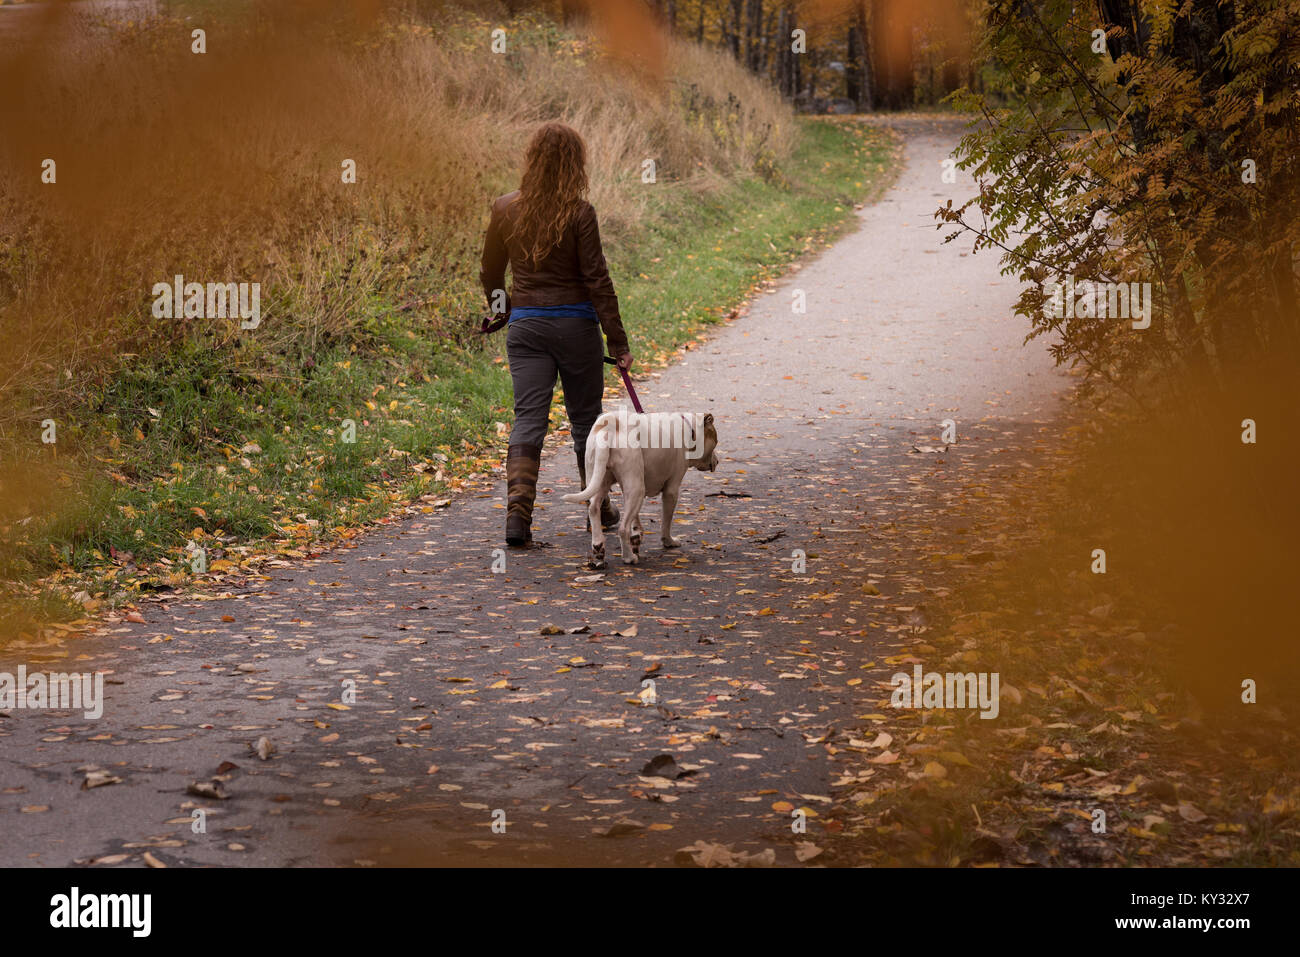 Woman walking in the park with her pet dog during autumn - Stock Image